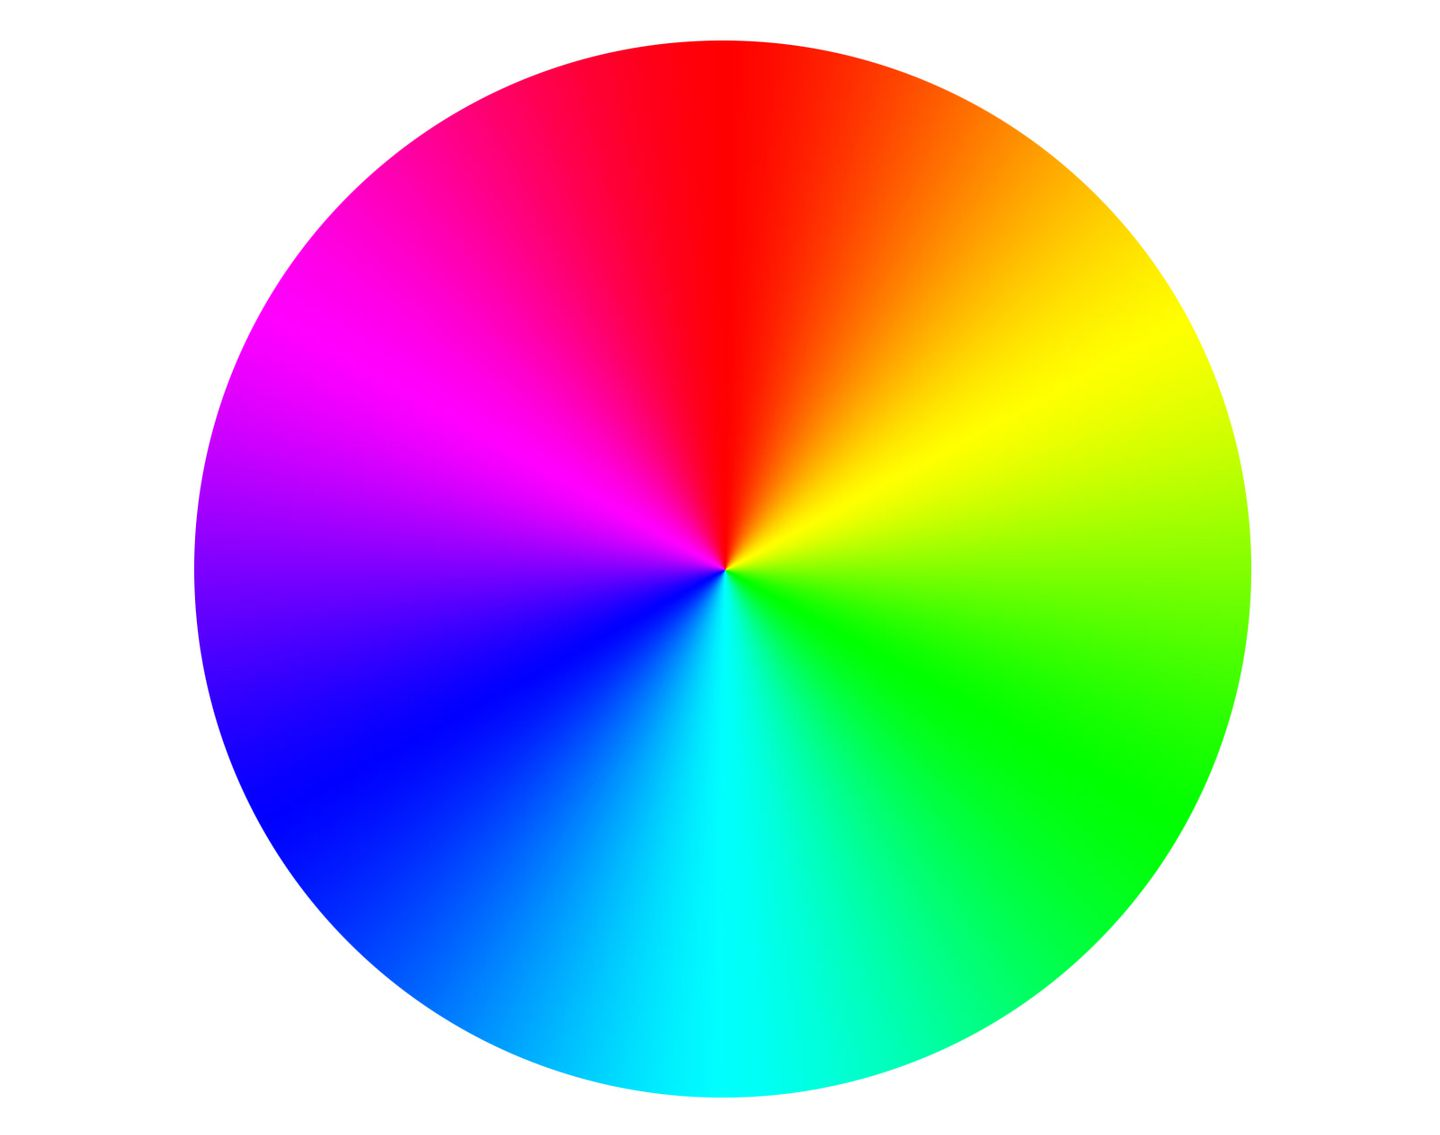 Computational color for White is all colors